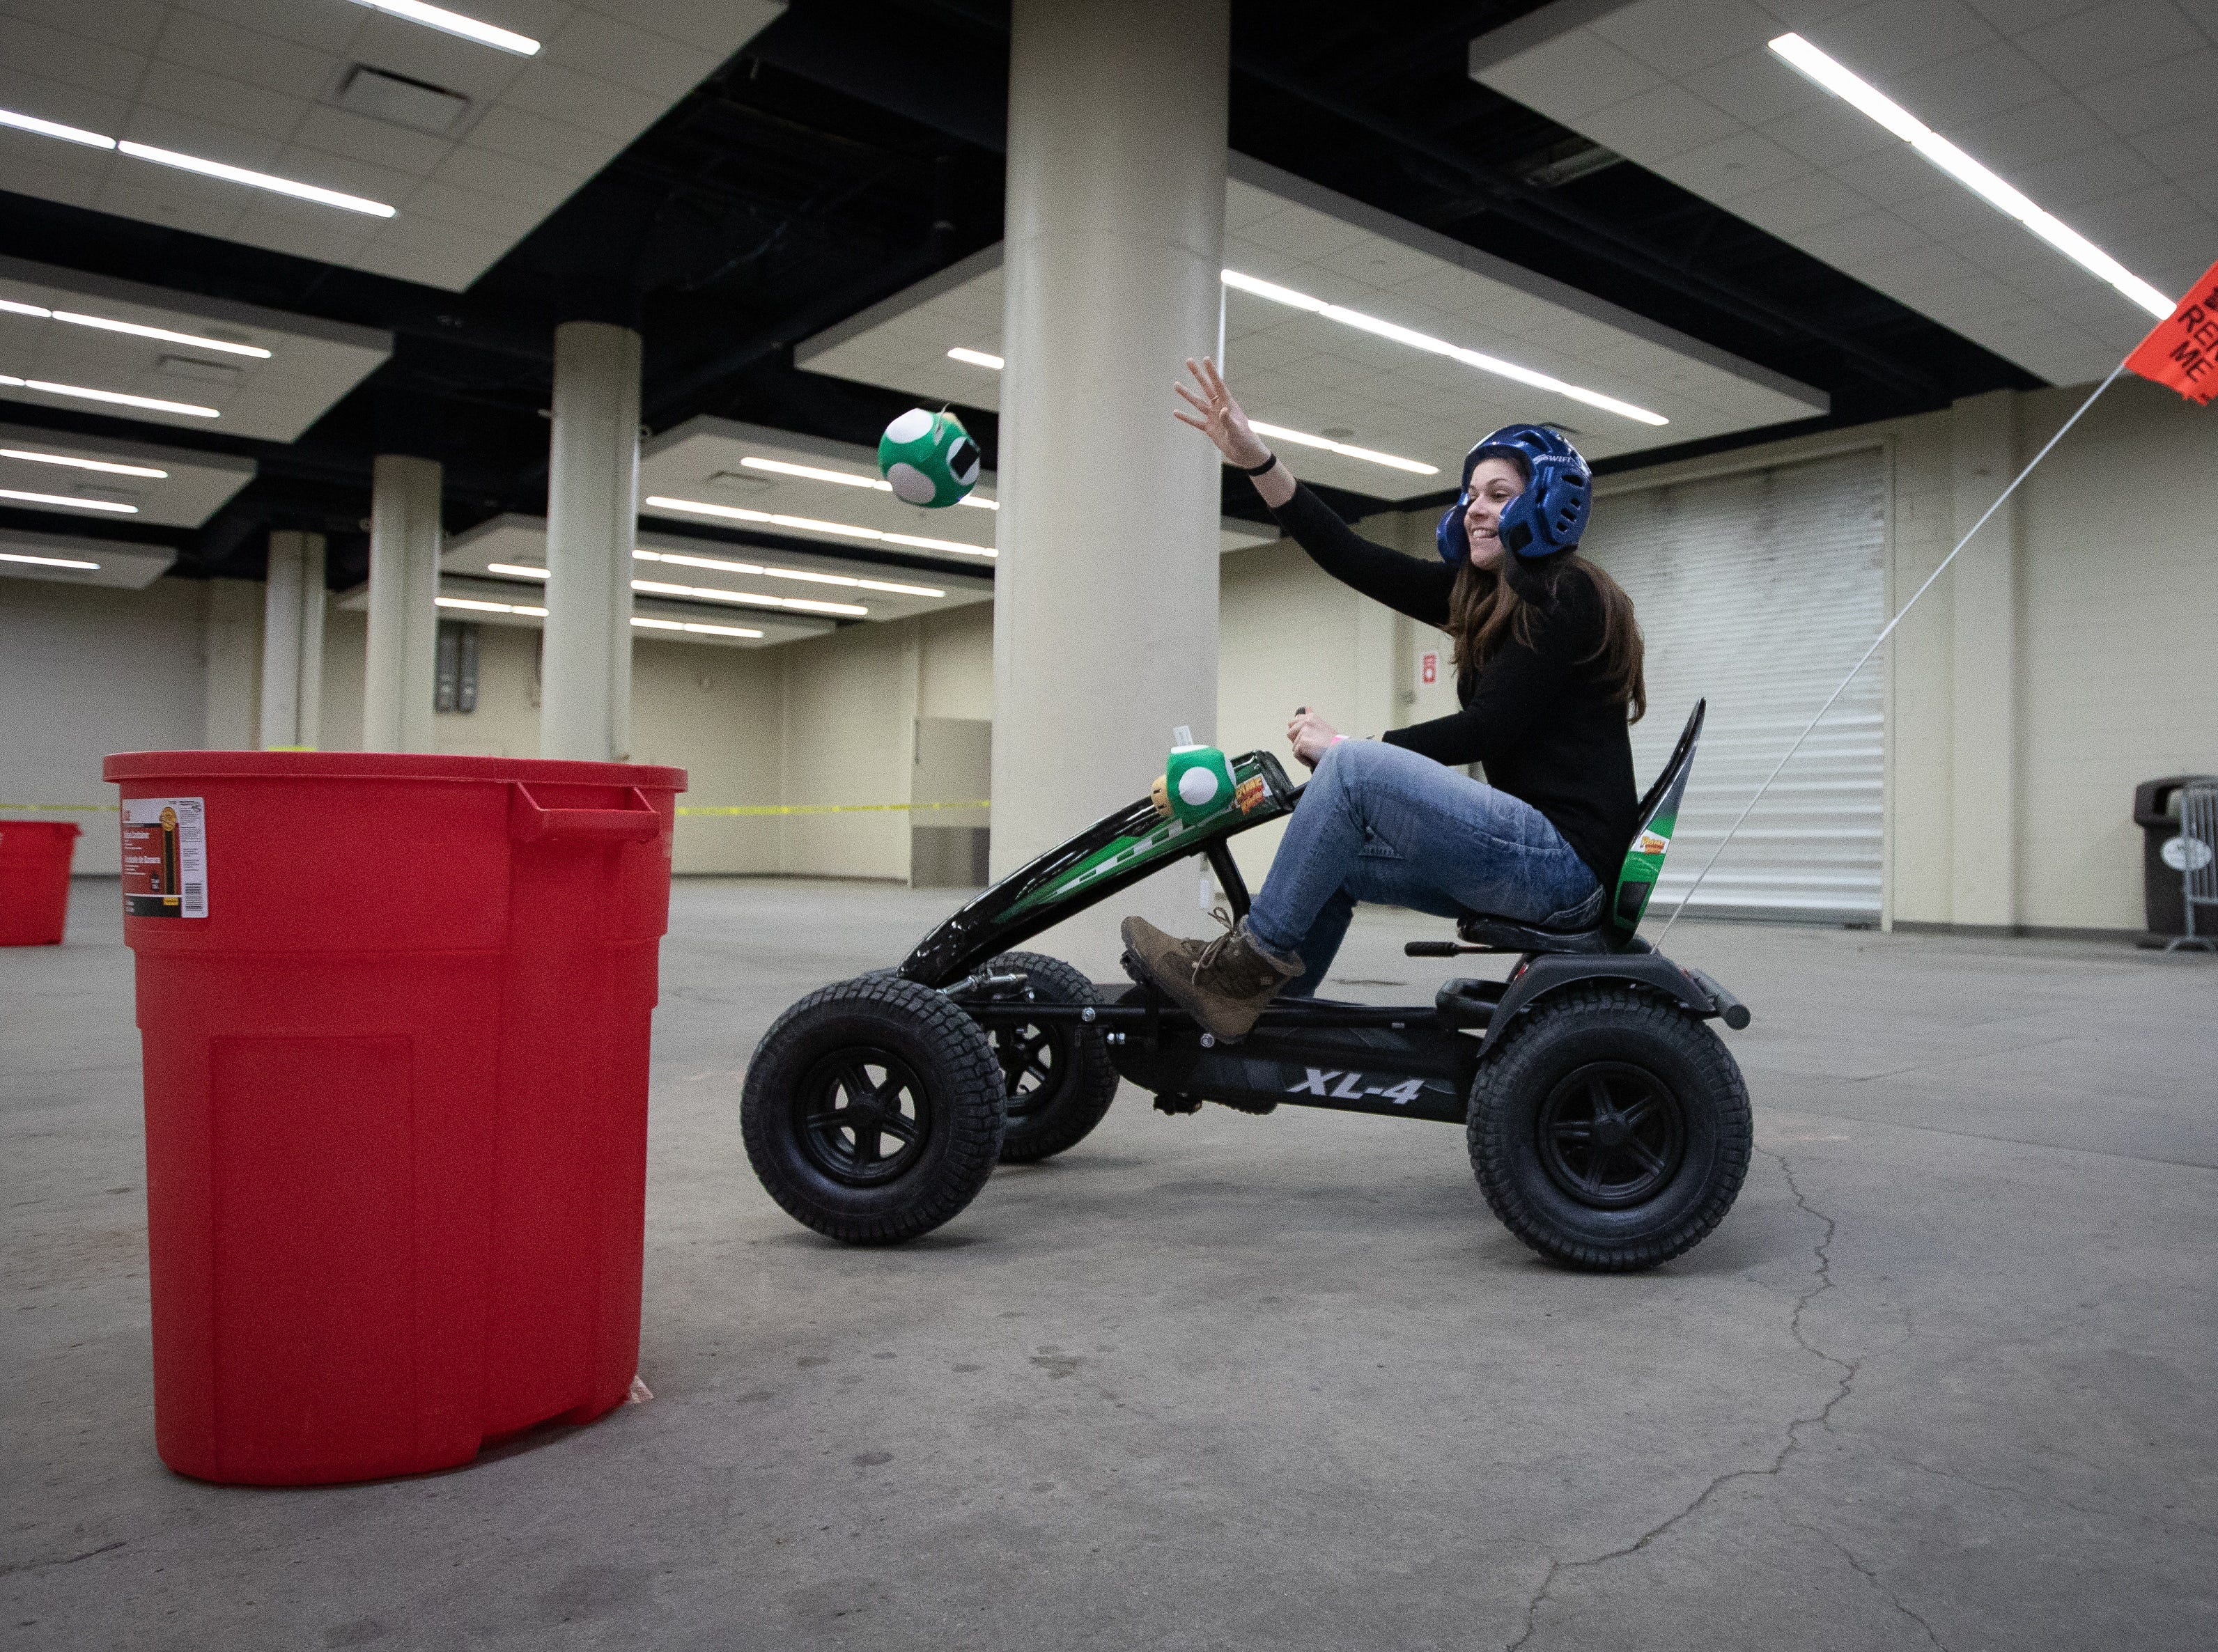 Sarah Gray, of Clive, throws a toy into a trash can during a go-kart race during the Bacon Fest at Hy-Vee Hall on Feb. 16, 2019 in Des Moines, Iowa.